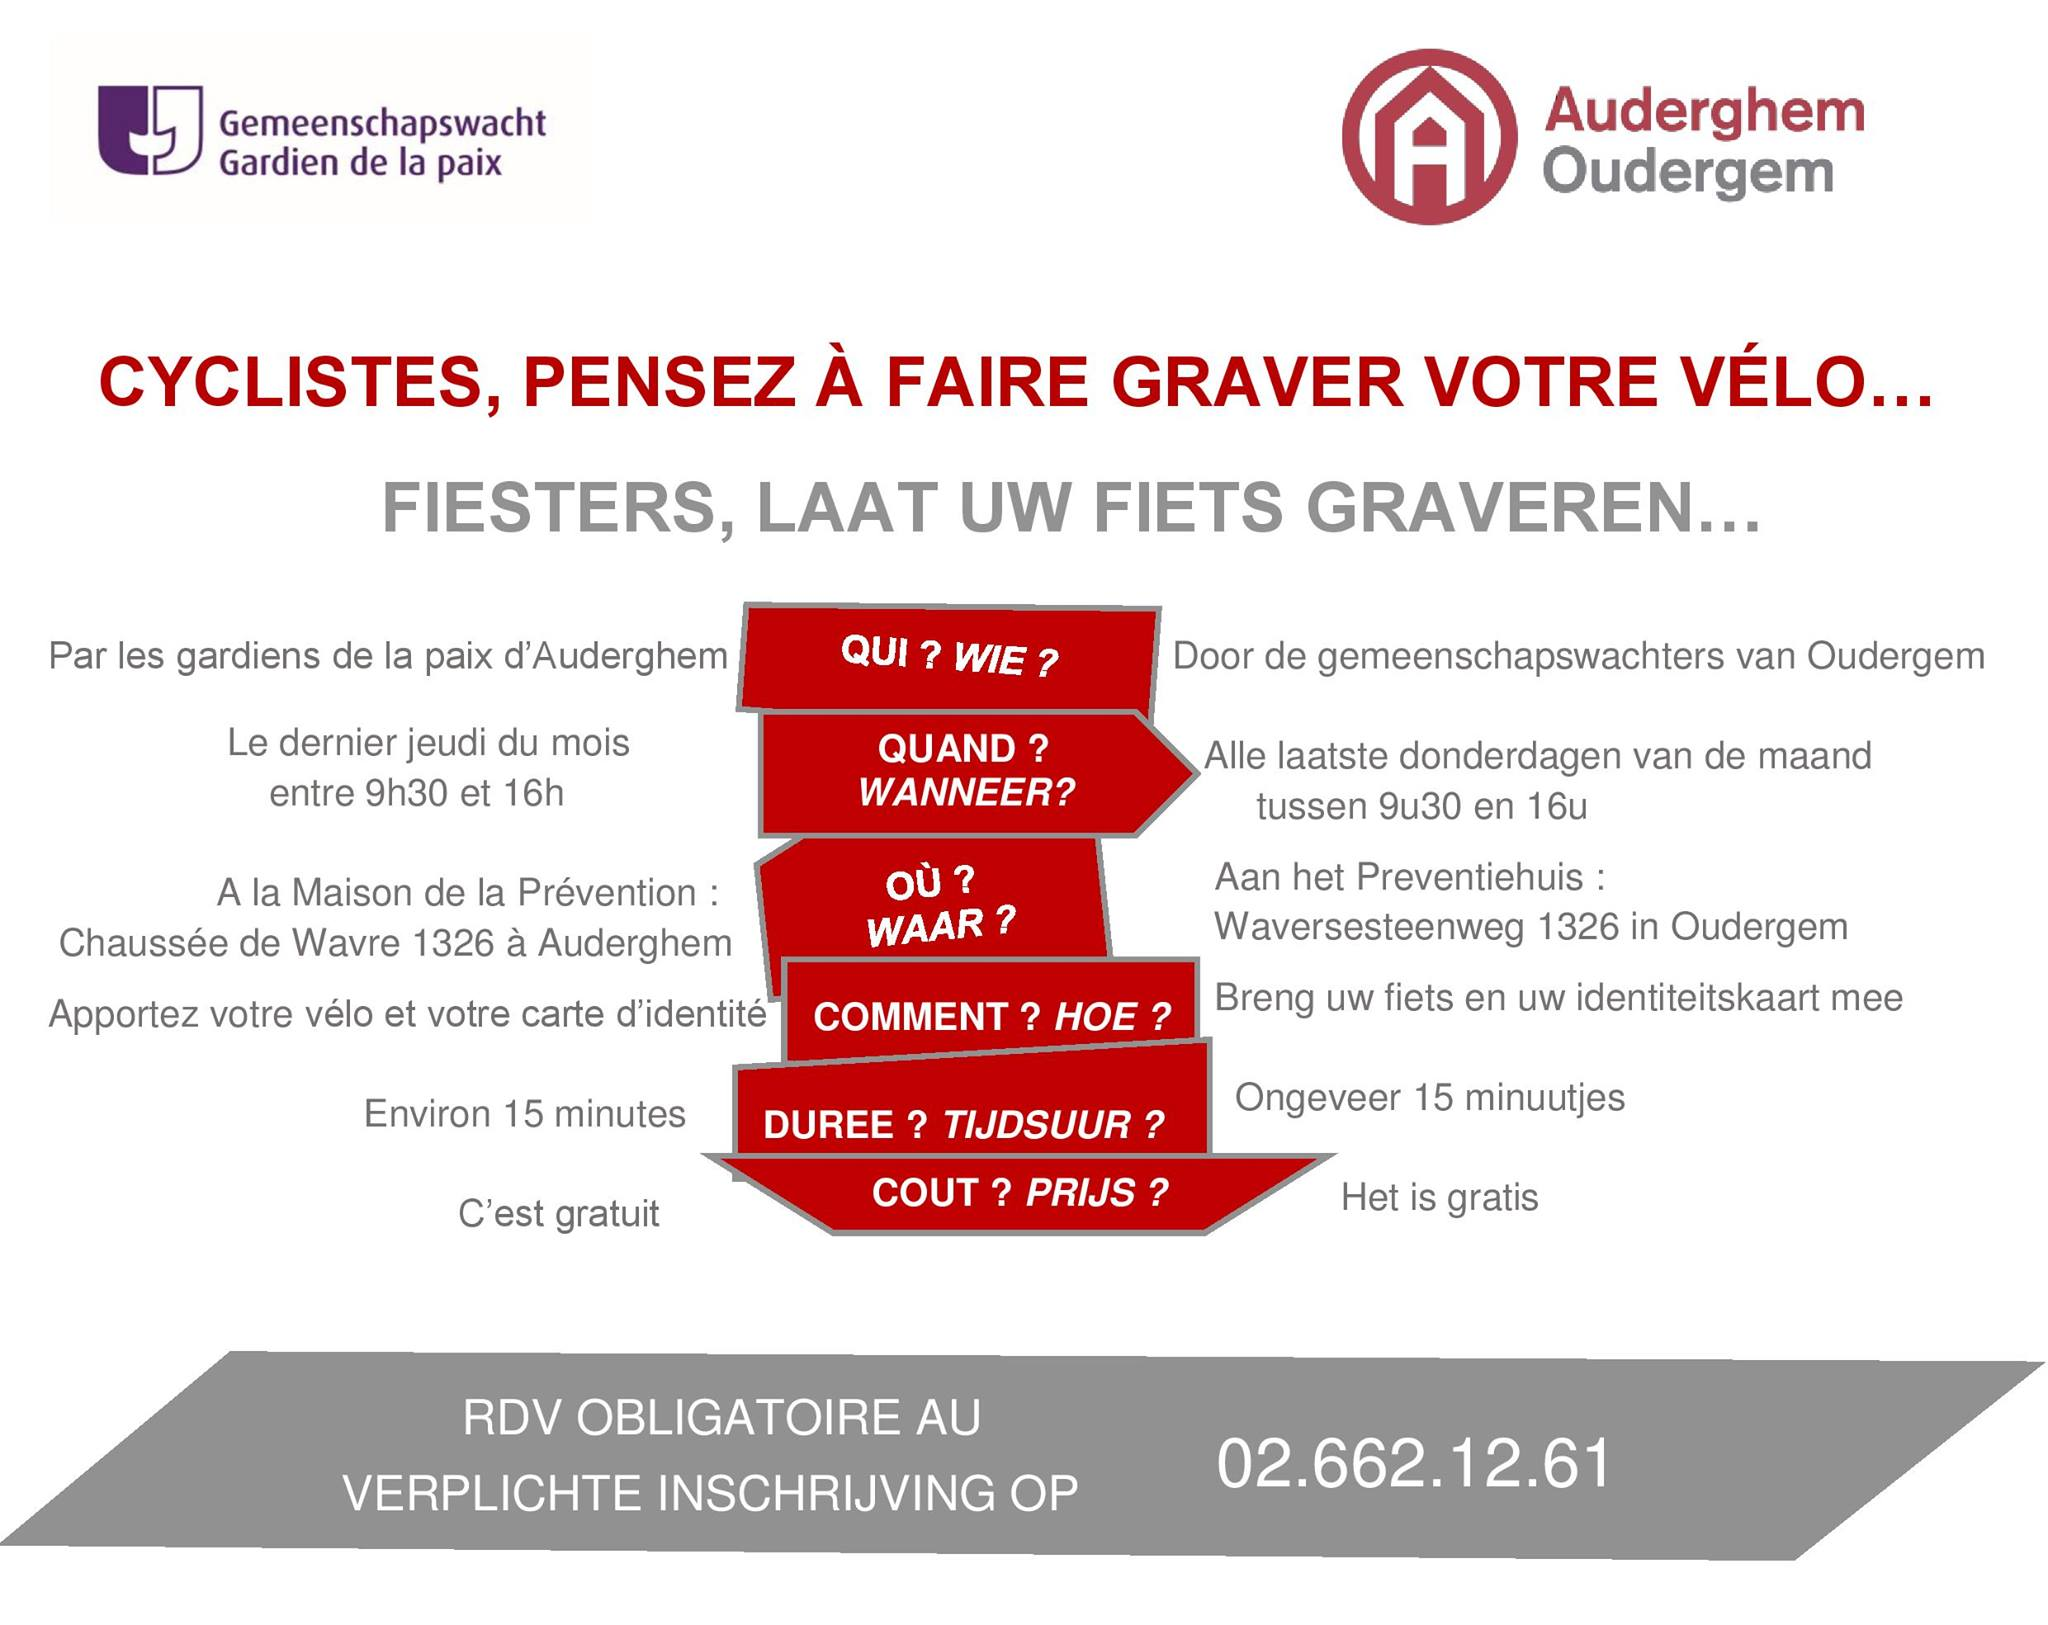 Prevention-maison.fr Oudergem Be Graveren Van Fietsen